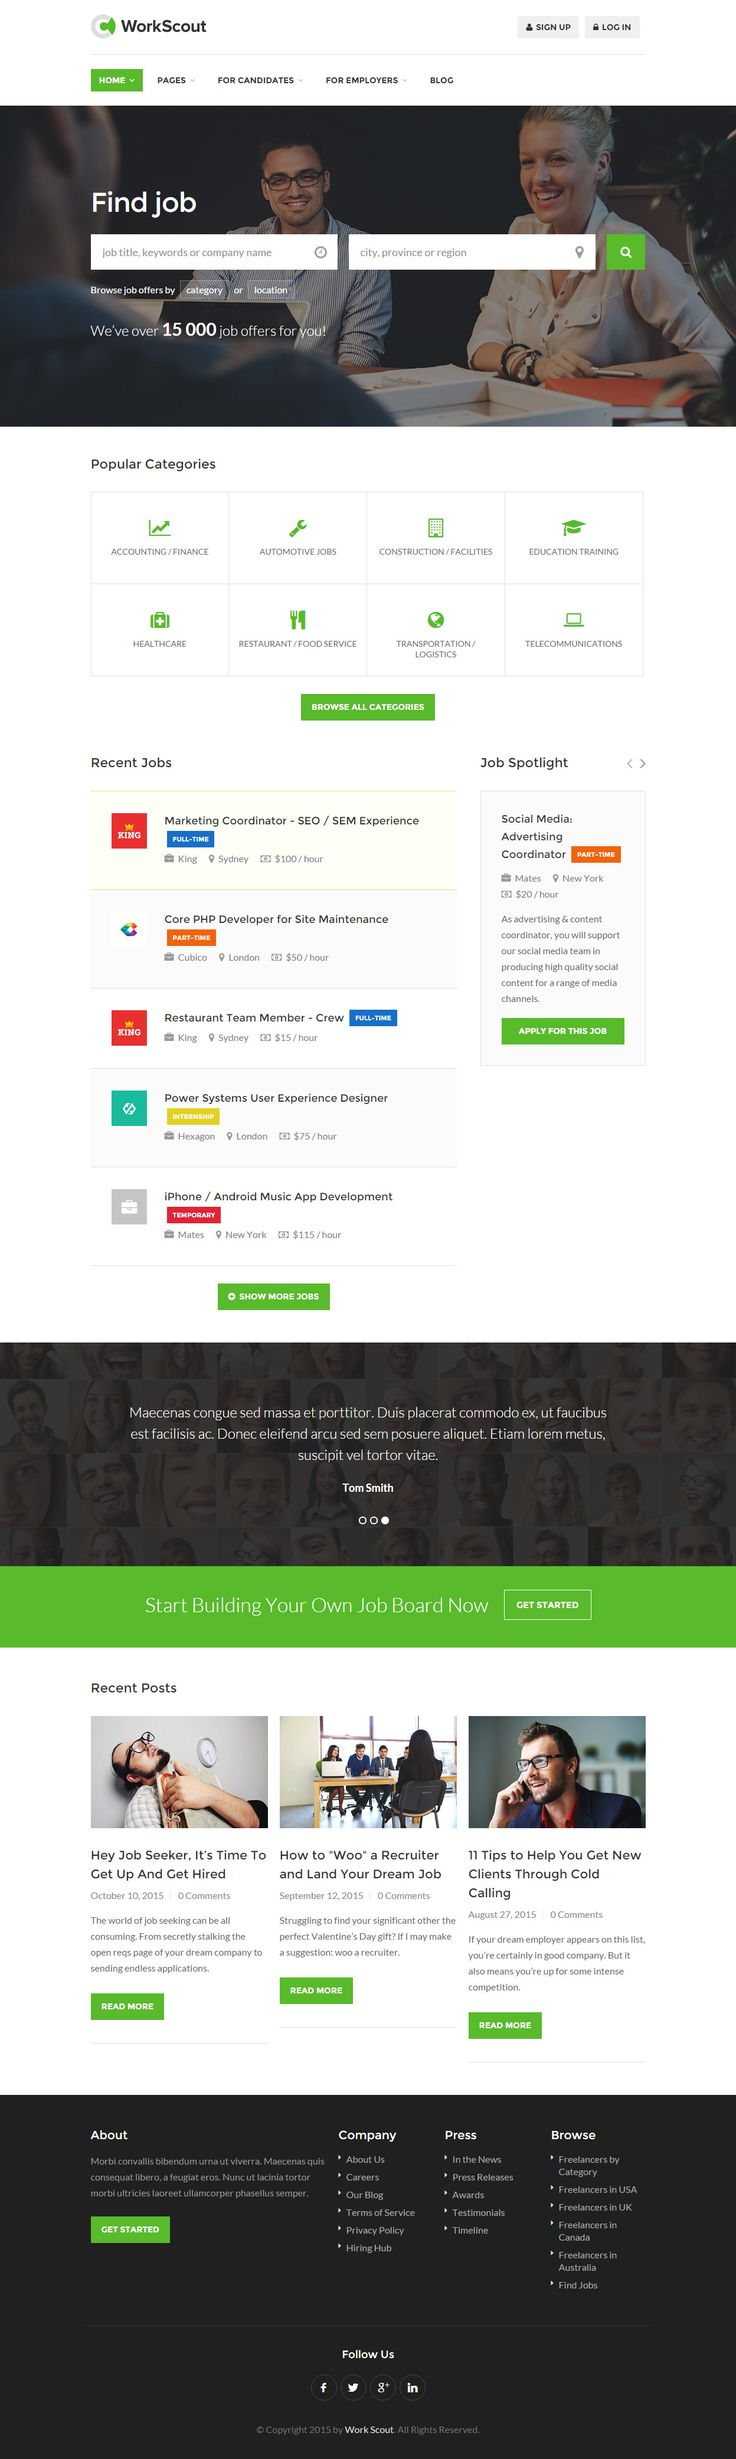 WorkScout is Premium full Responsive Retina #HTML5 #JobBoard #template. Bootstrap 3 Framework. Revolution Slider. Contact Form. Test free demo at: http://www.responsivemiracle.com/cms/workscout-premium-responsive-job-board-html5-template/